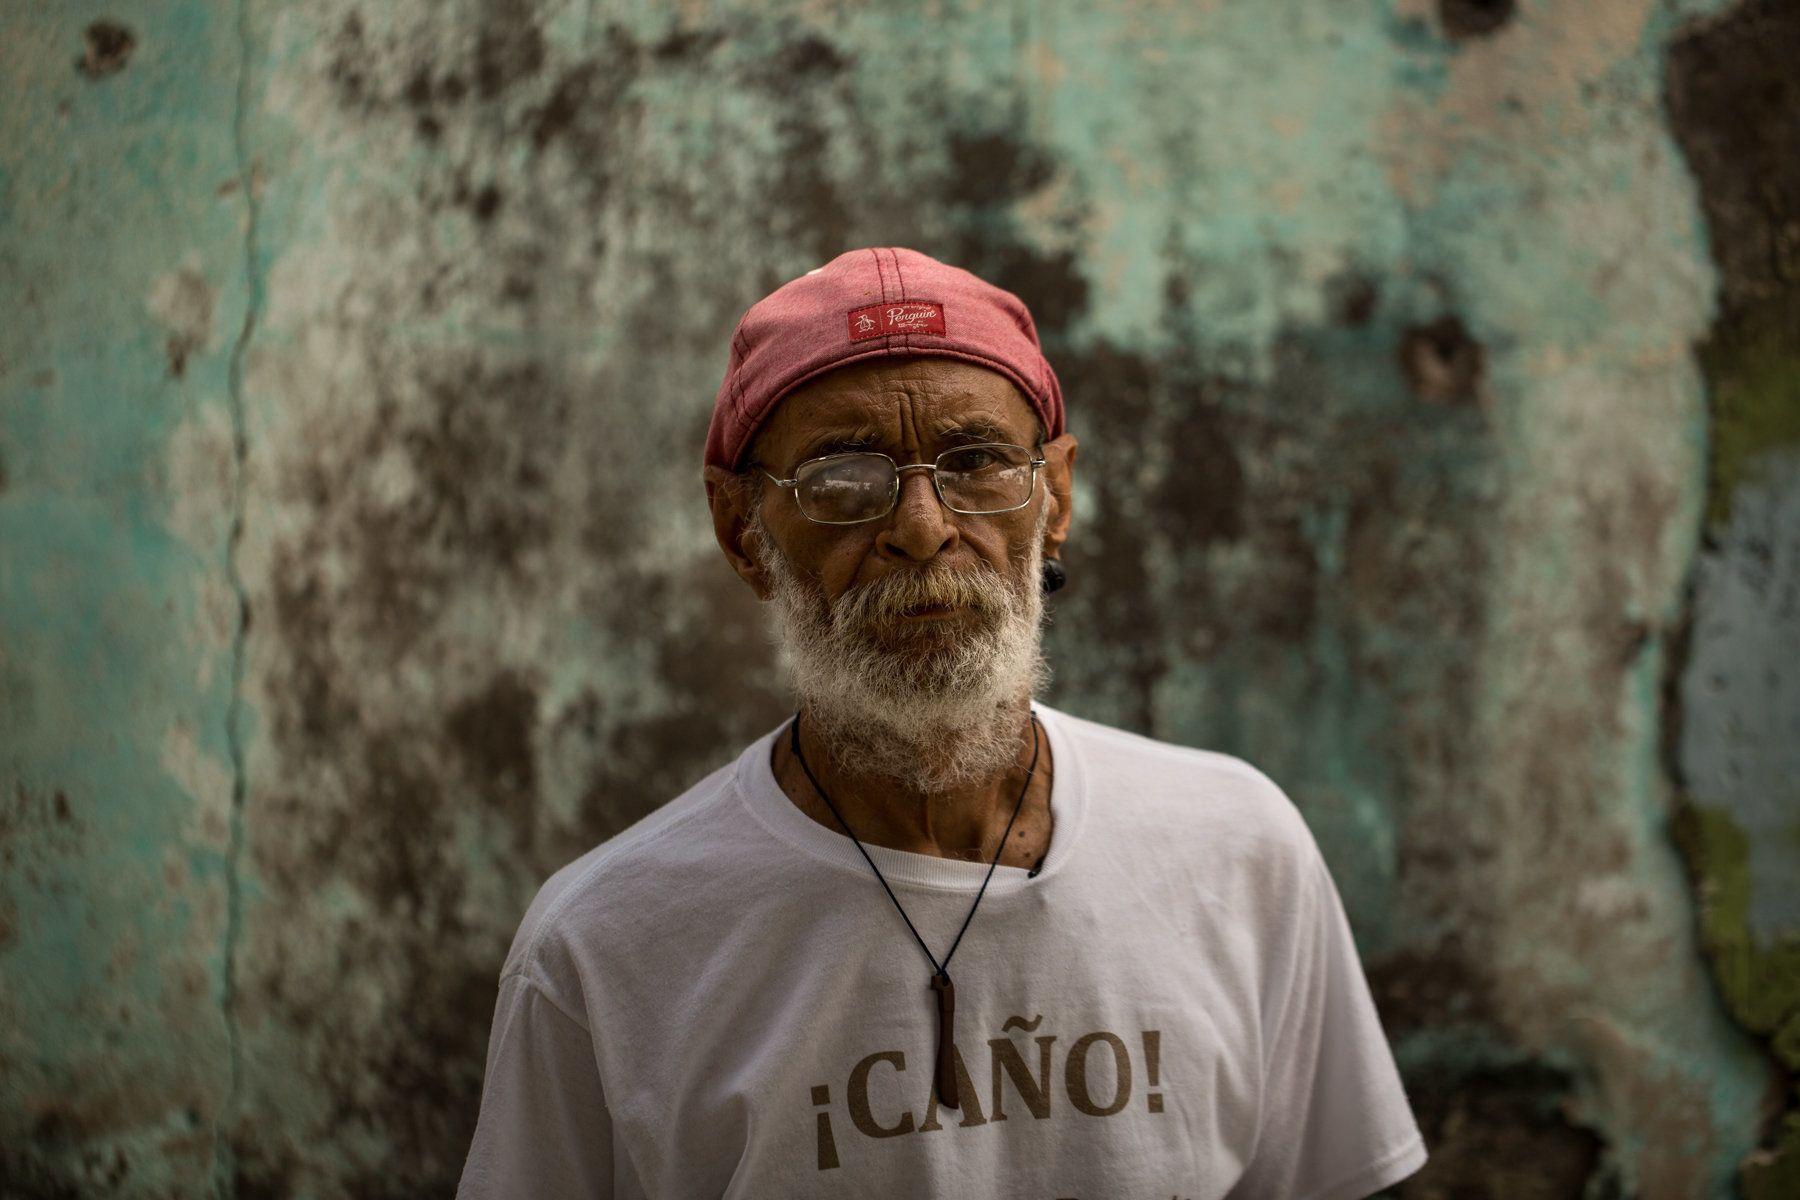 José Caraballo Pagán, a community activist and government worker, has lived near El Caño since 1963. He